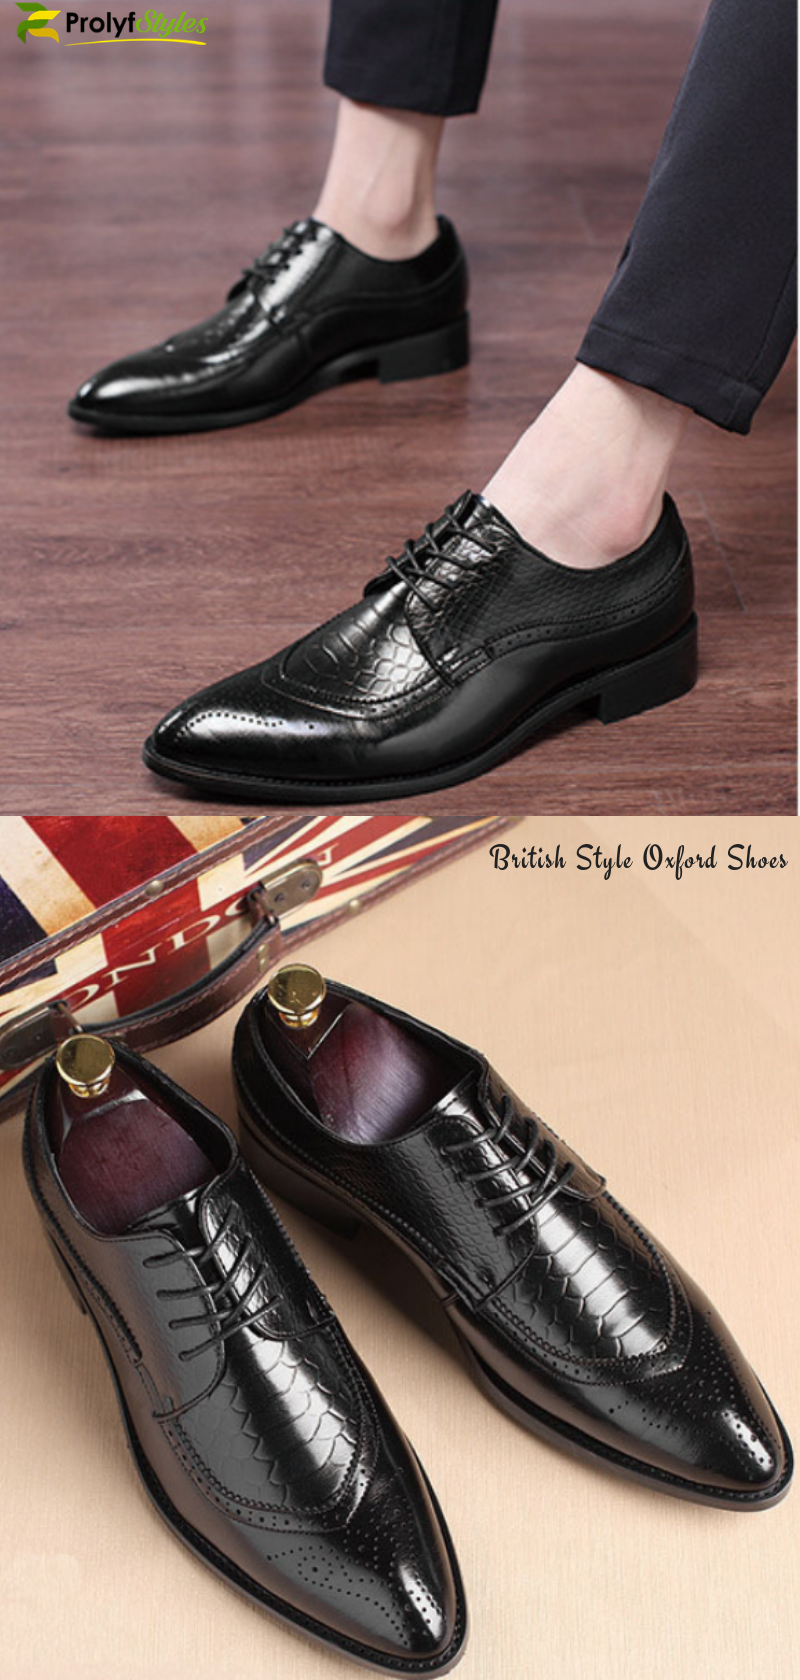 915ea02befcc0 British Style Oxford Shoes in 2019